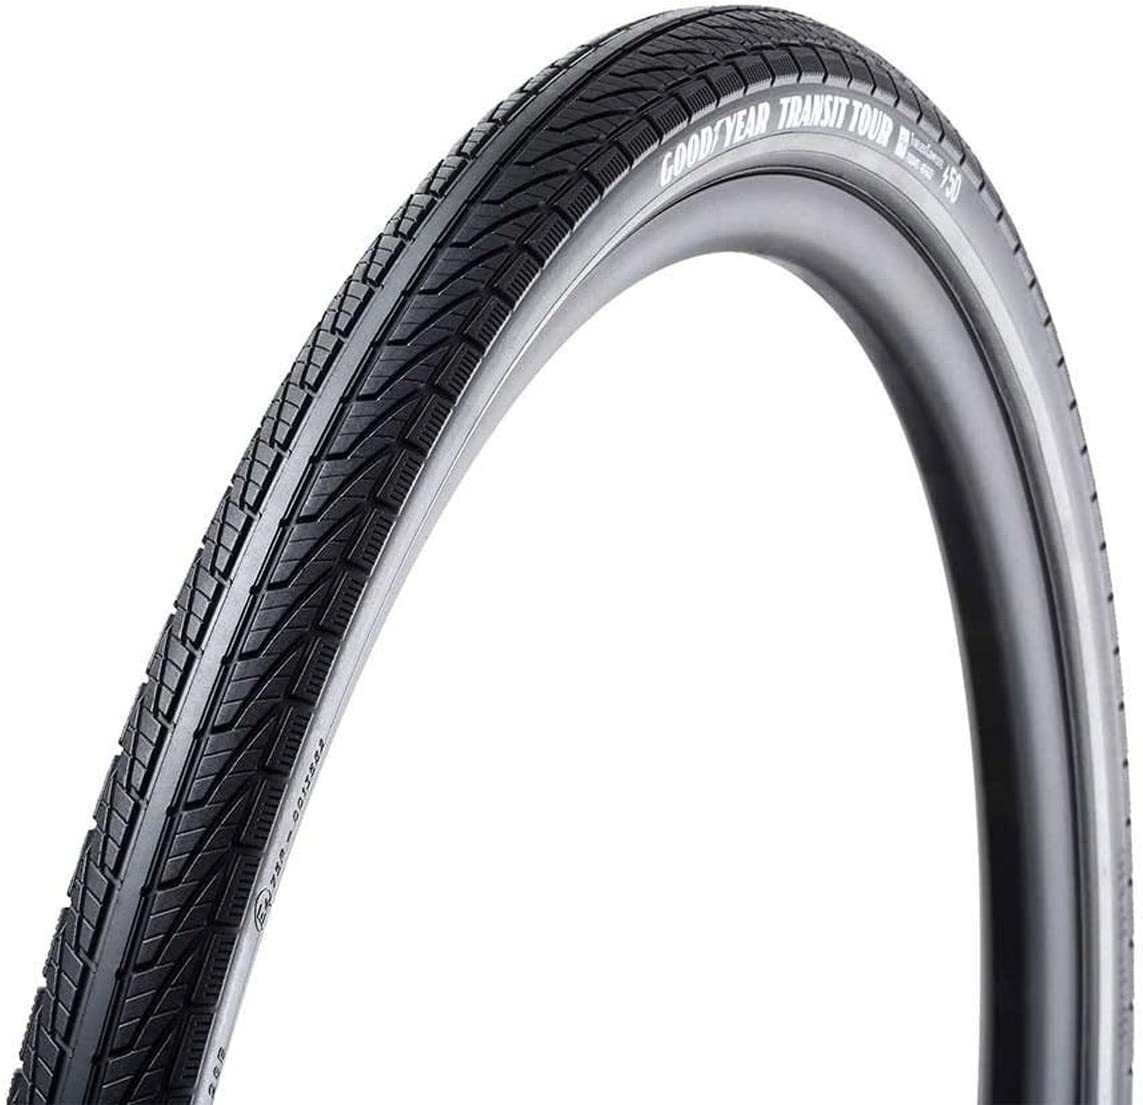 700x50C Black Clincher Goodyear Transit Tour Tire Dynamic:Silica4 S3: Shell 60TPI Wire